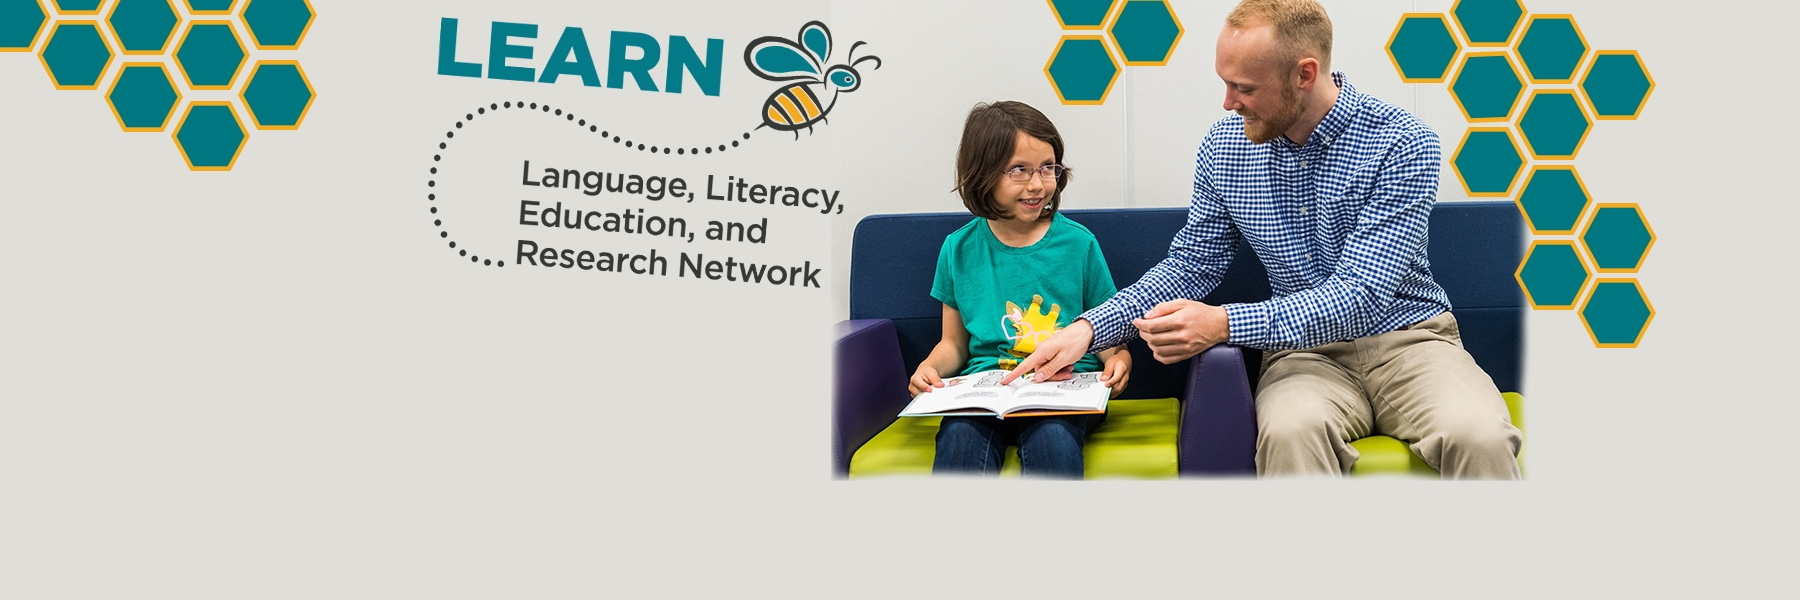 Man reads to little girl on a couch with LEARN logo on wall - it is a bee with honeycombs